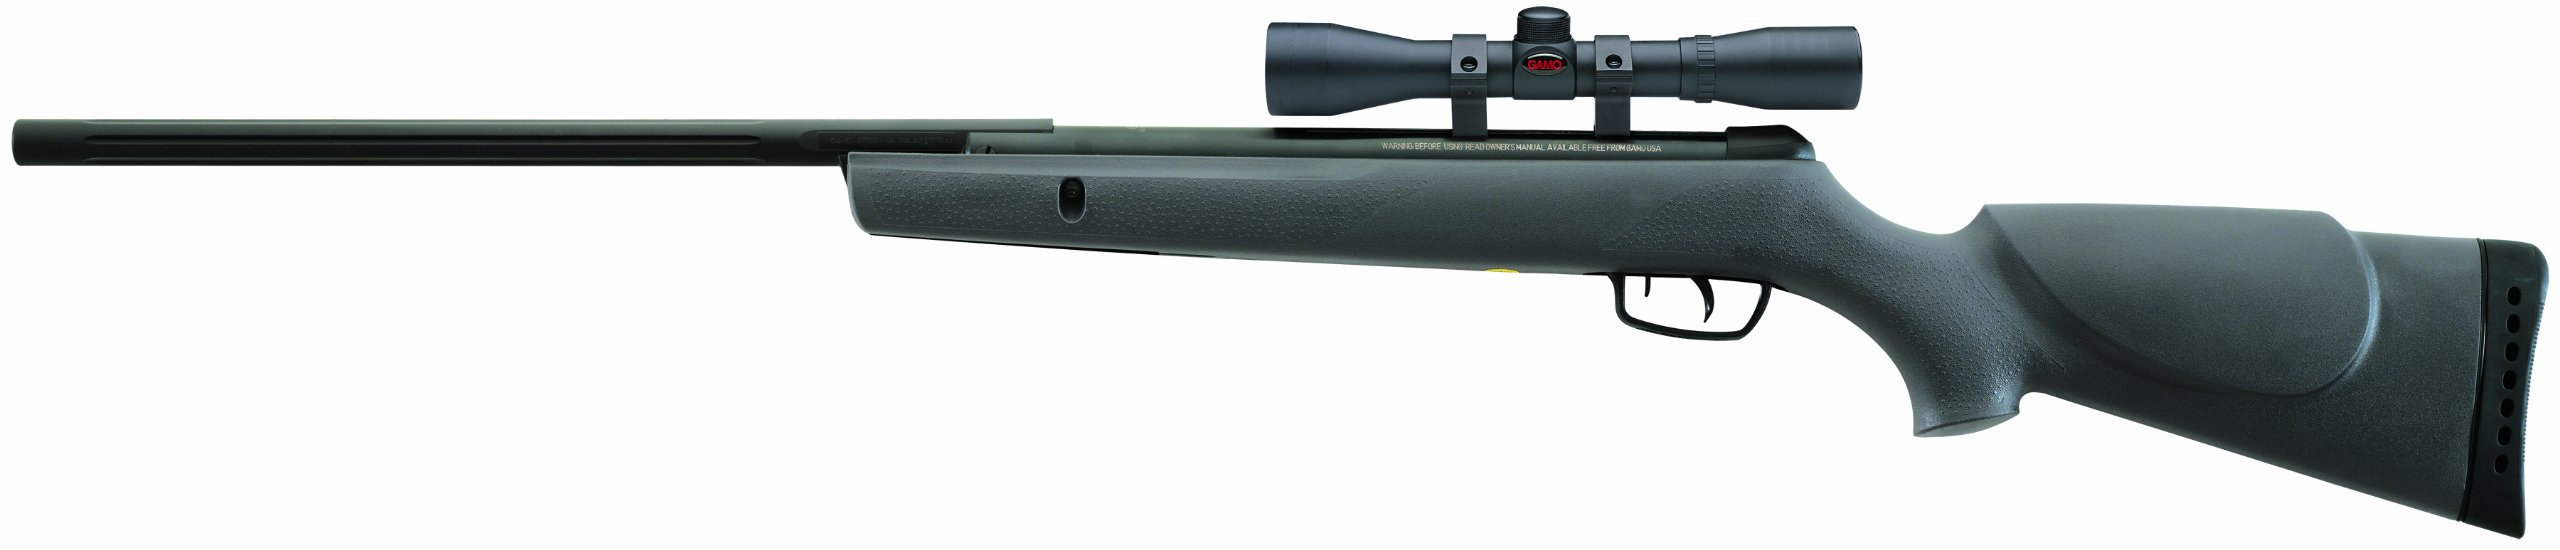 Gamo Hornet Air Rifle